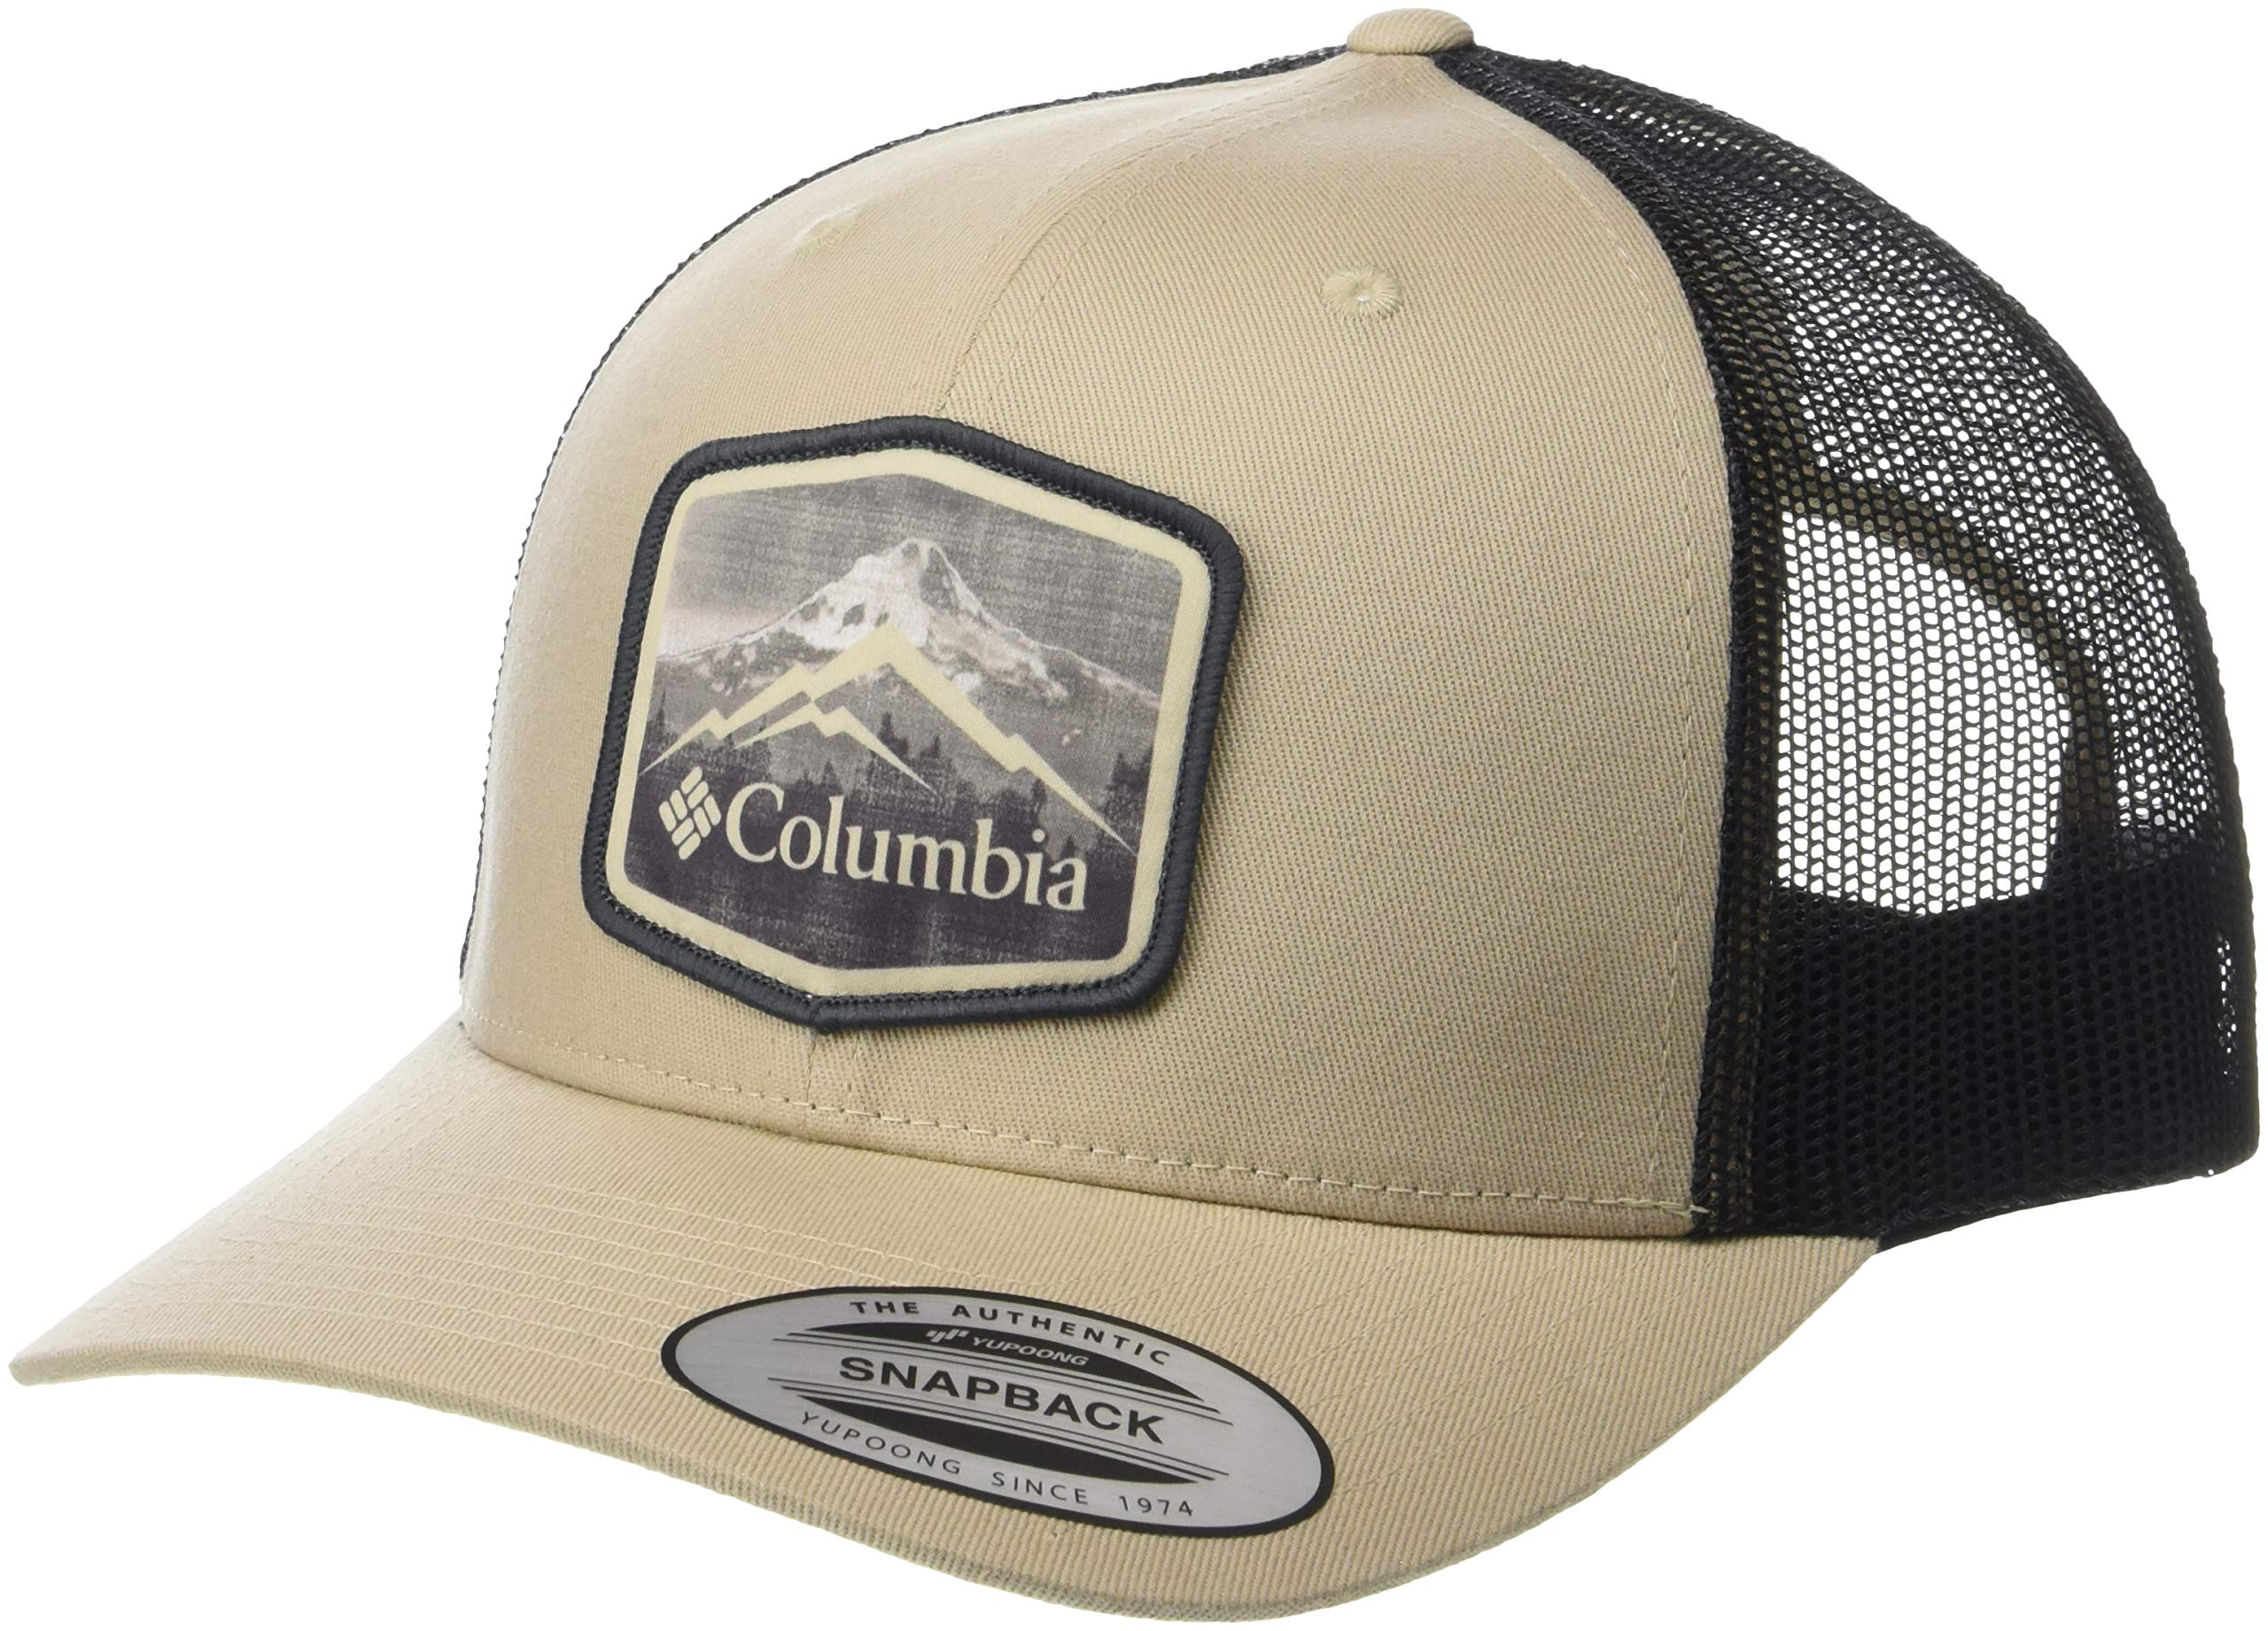 Columbia Men's Mesh Snap Back Hat, Ancient Fossil, Hex Patch, One Size